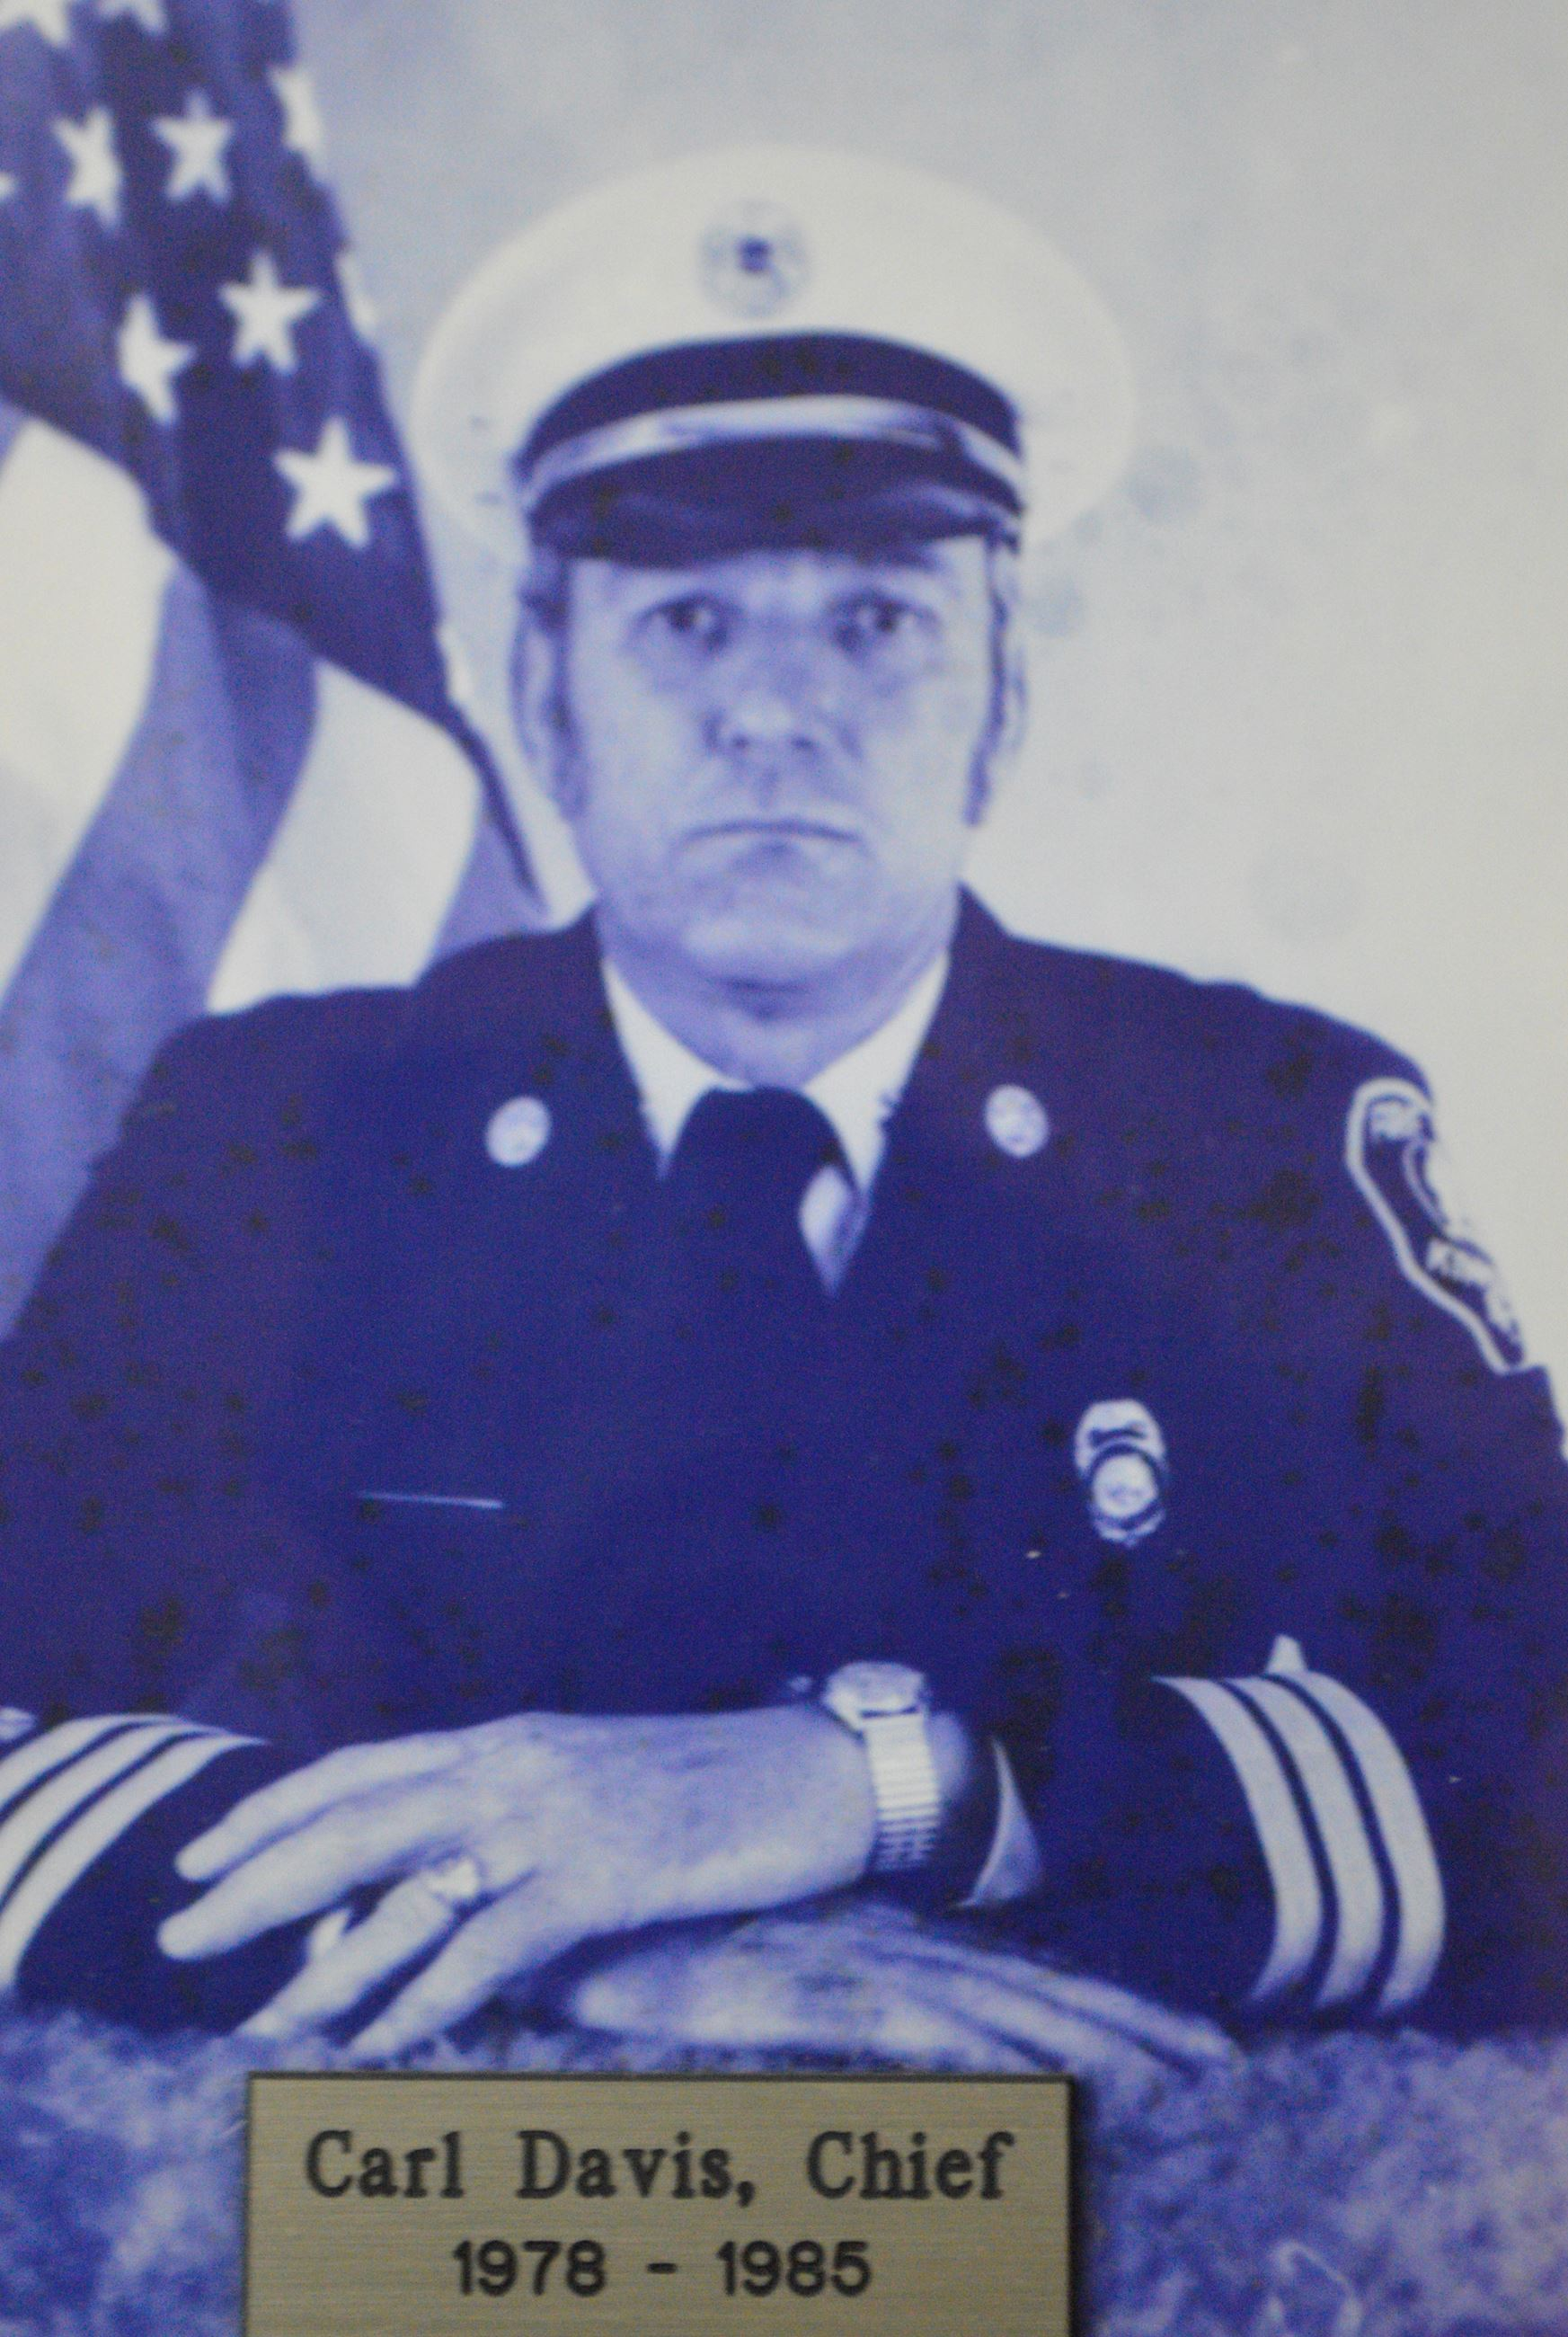 The Late Fire Chief Carl Davis Served from 1978 - 1985